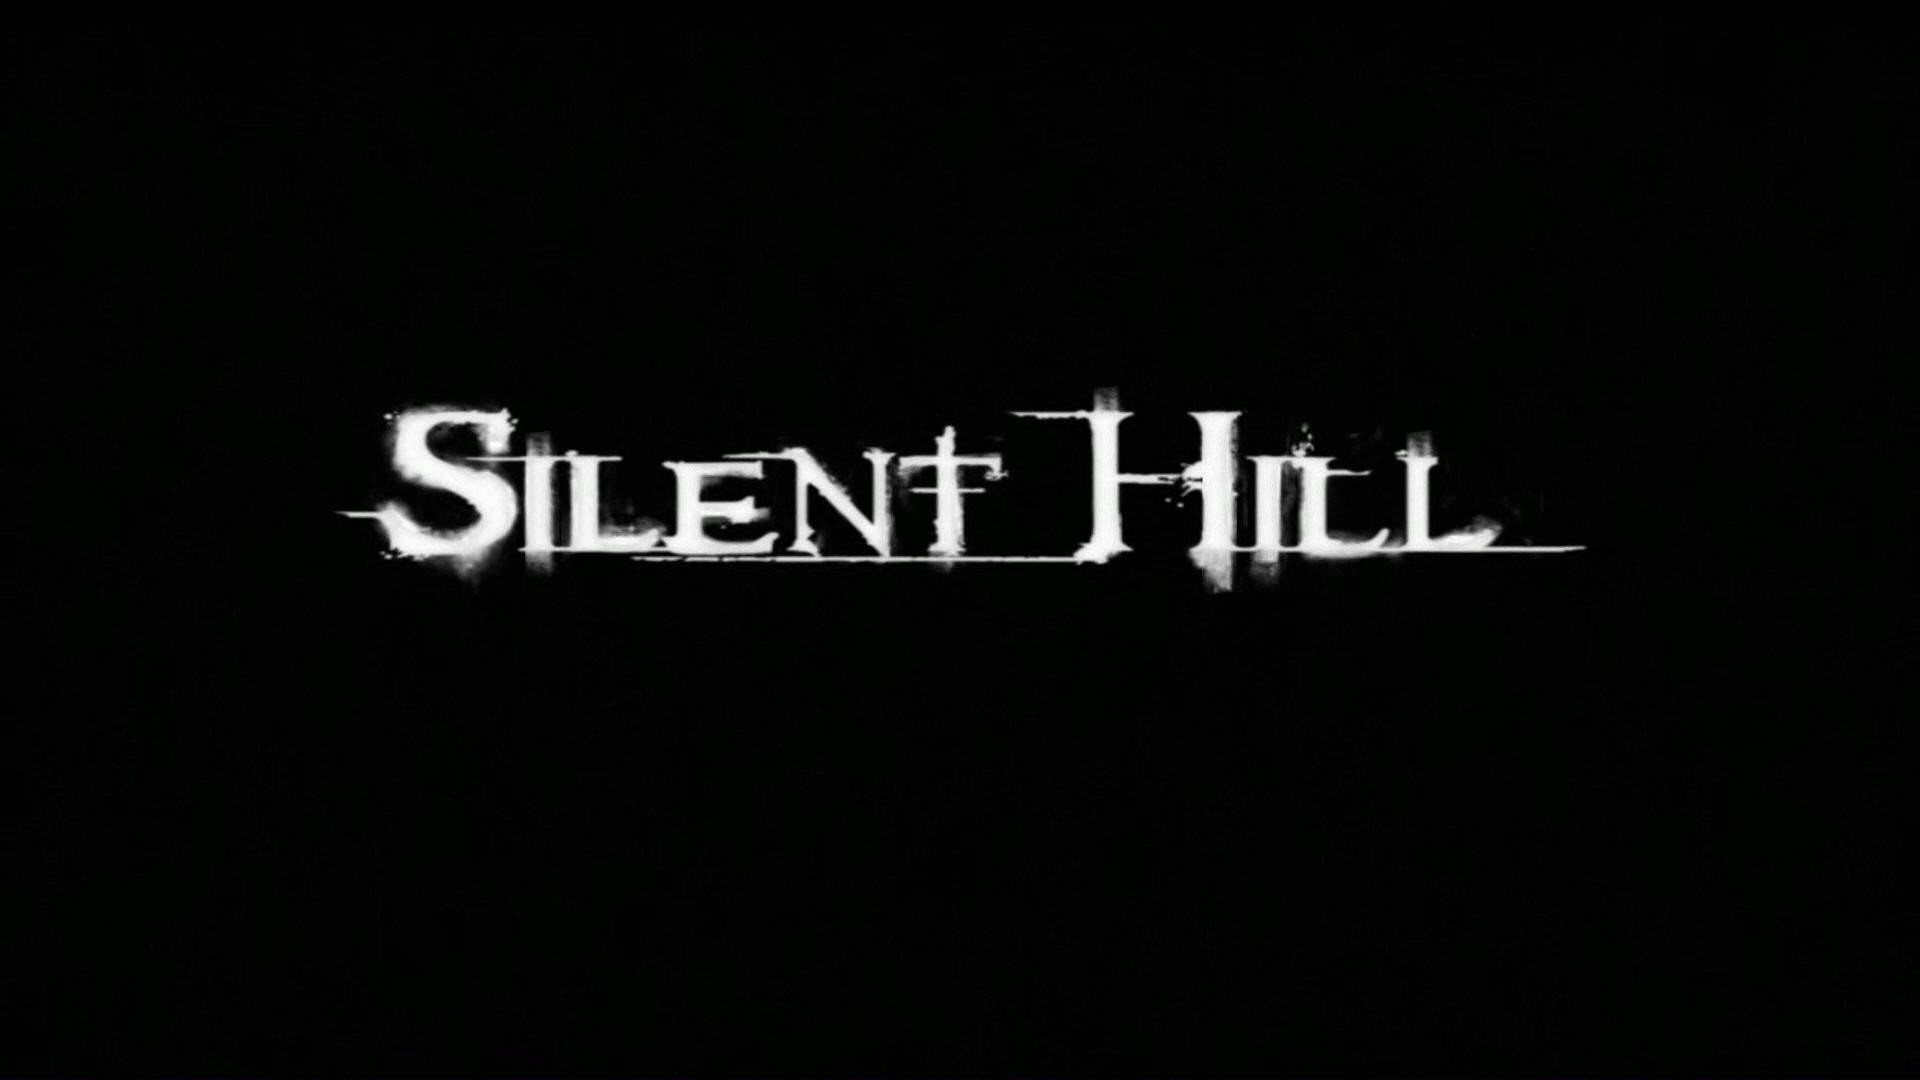 Silent Hill wallpaper ·① Download free amazing High ...